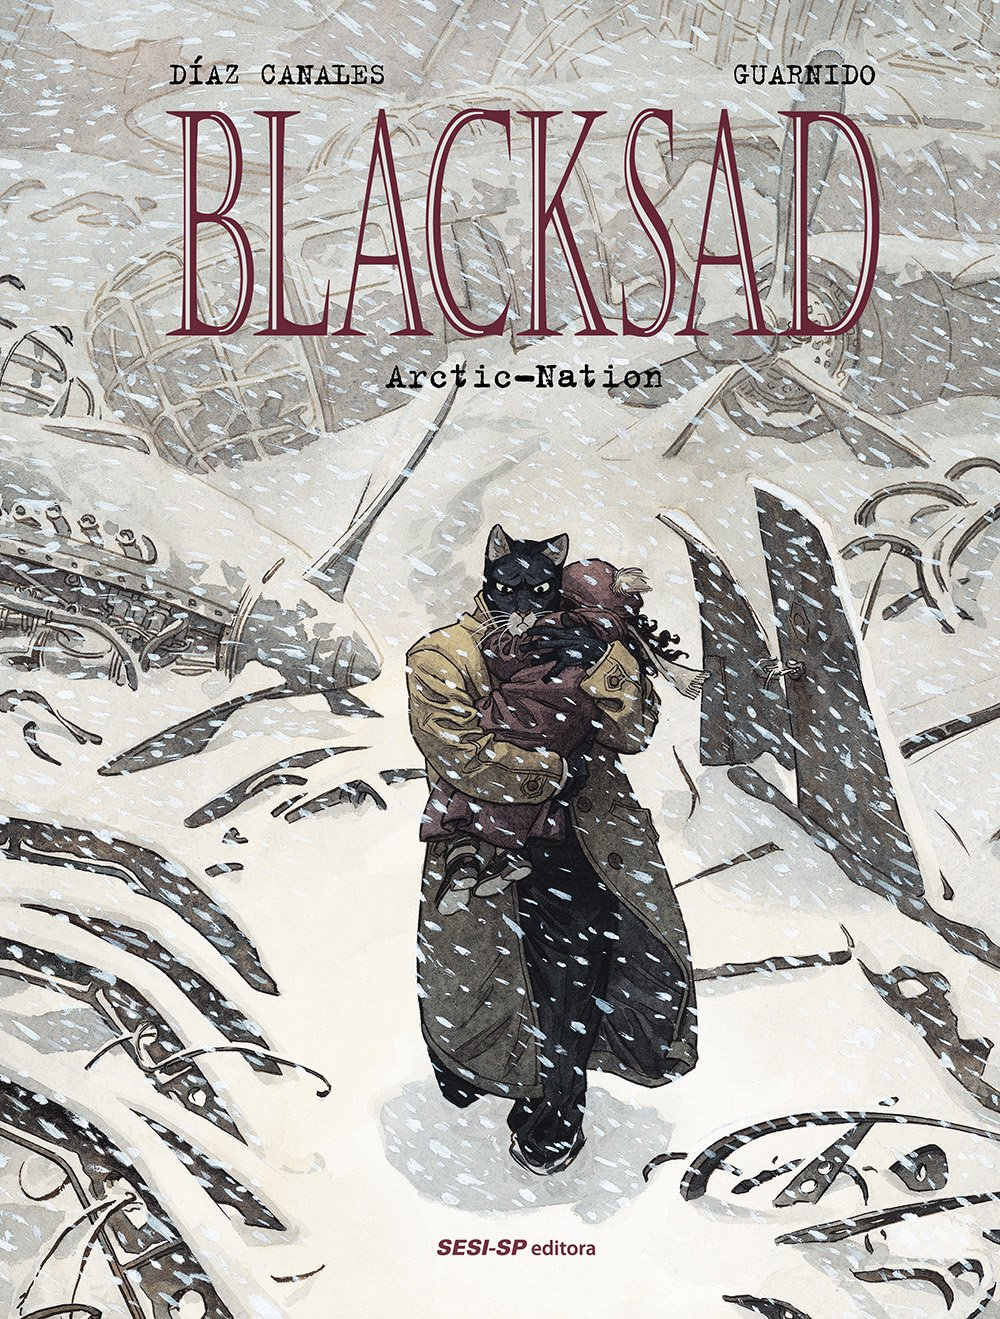 Resenha | Blacksad: Arctic-Nation